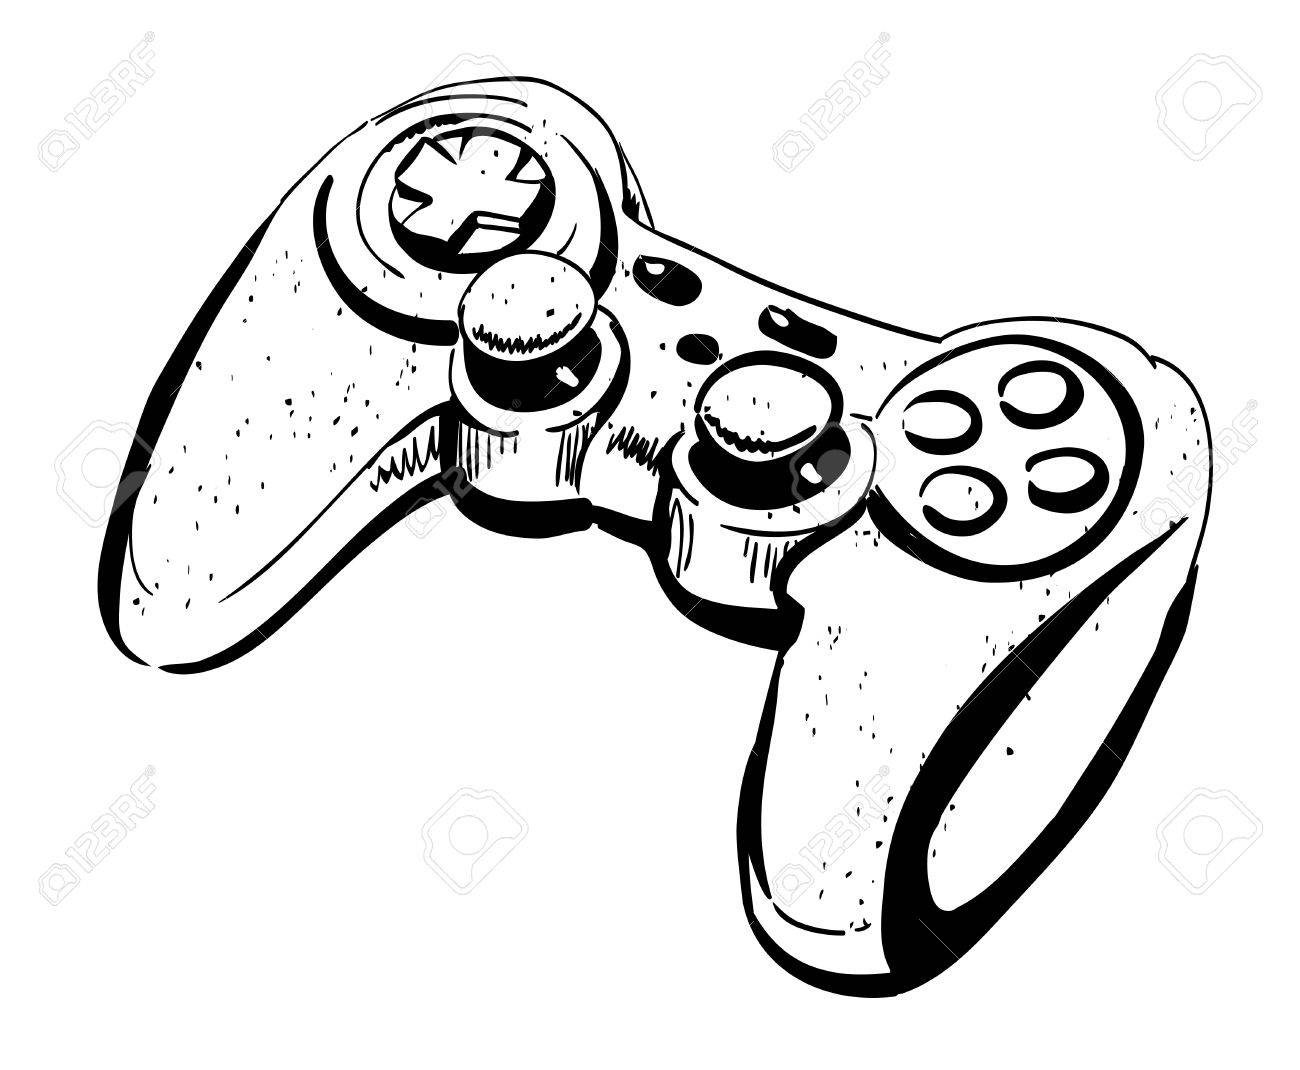 D Line Drawing Game : Cartoon image of joystick. an artistic freehand picture. royalty